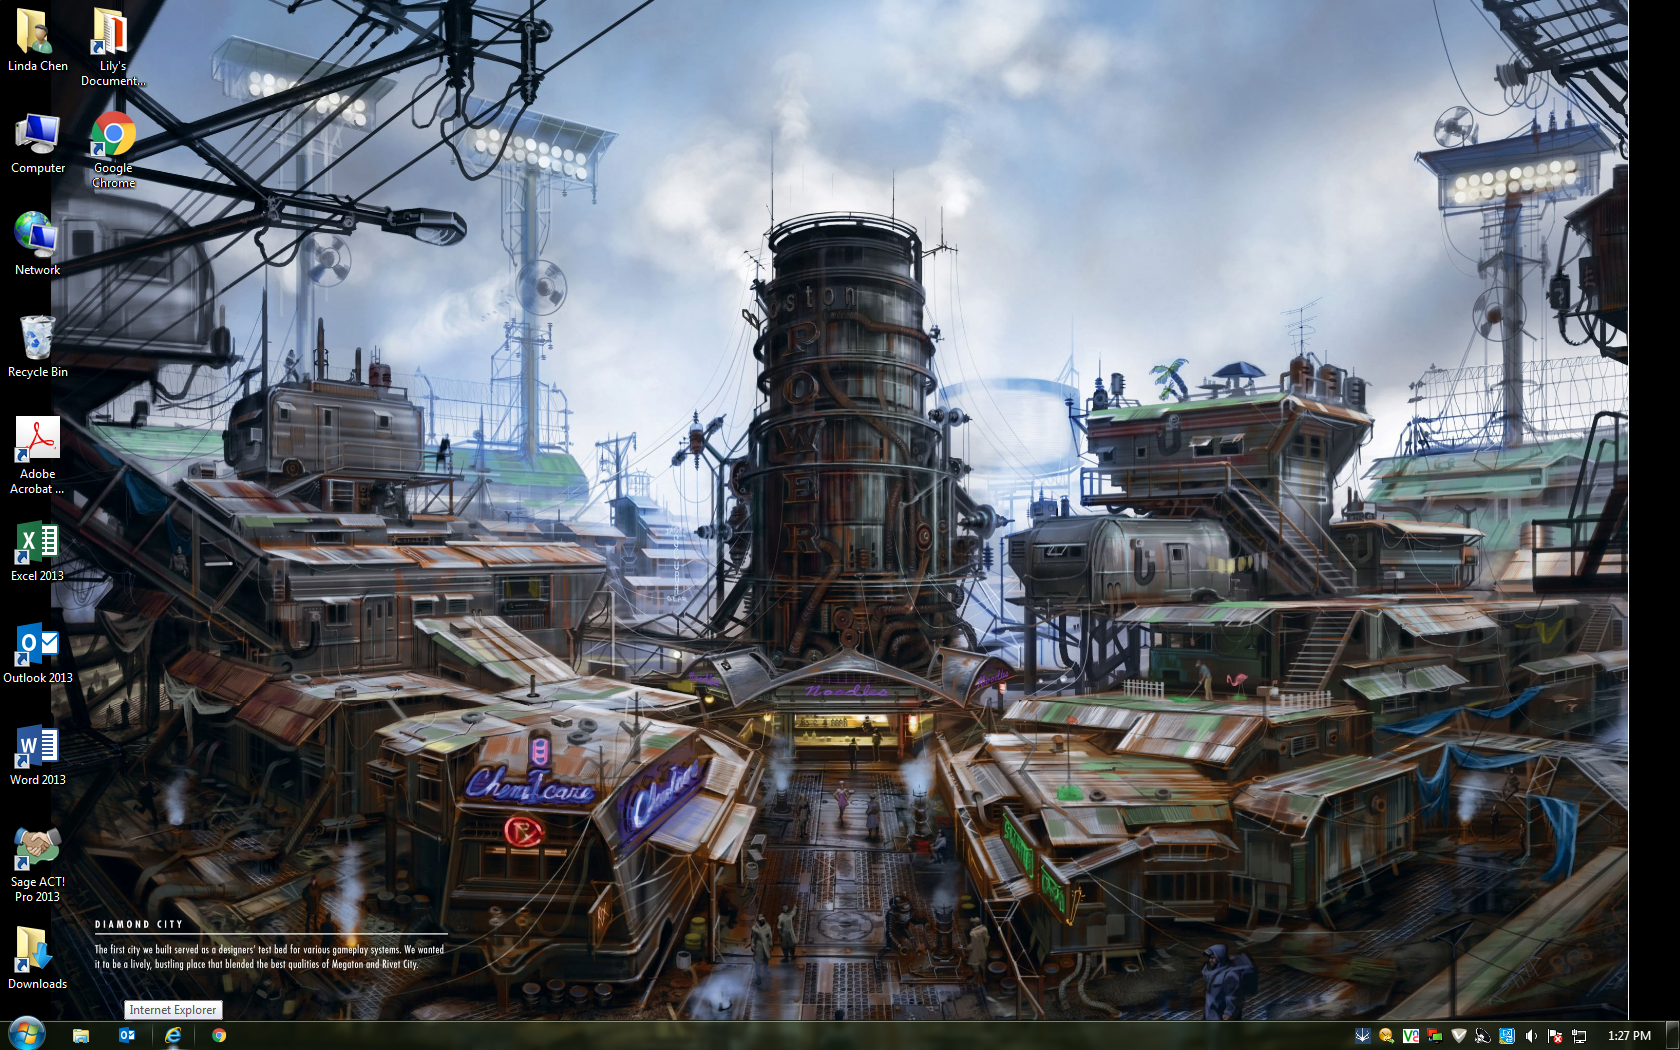 My Favorite Desktop Wallpaper Diamond City Concept Art Fallout4 1680x1050